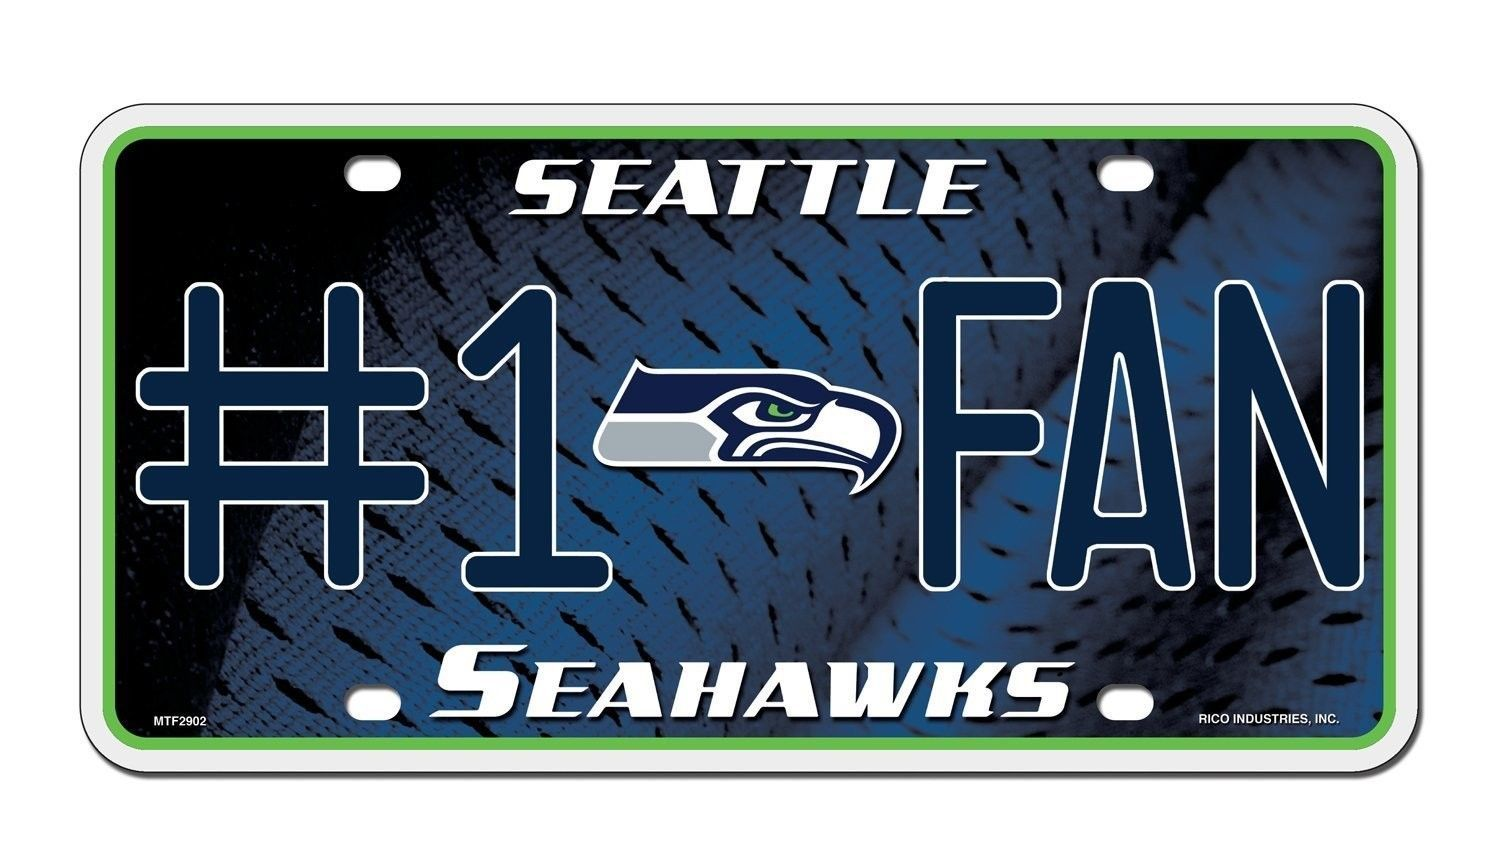 SEATTLE SEAHAWKS #1 FAN CAR AUTO METAL LICENSE PLATE TAG NFL FOOTBALL